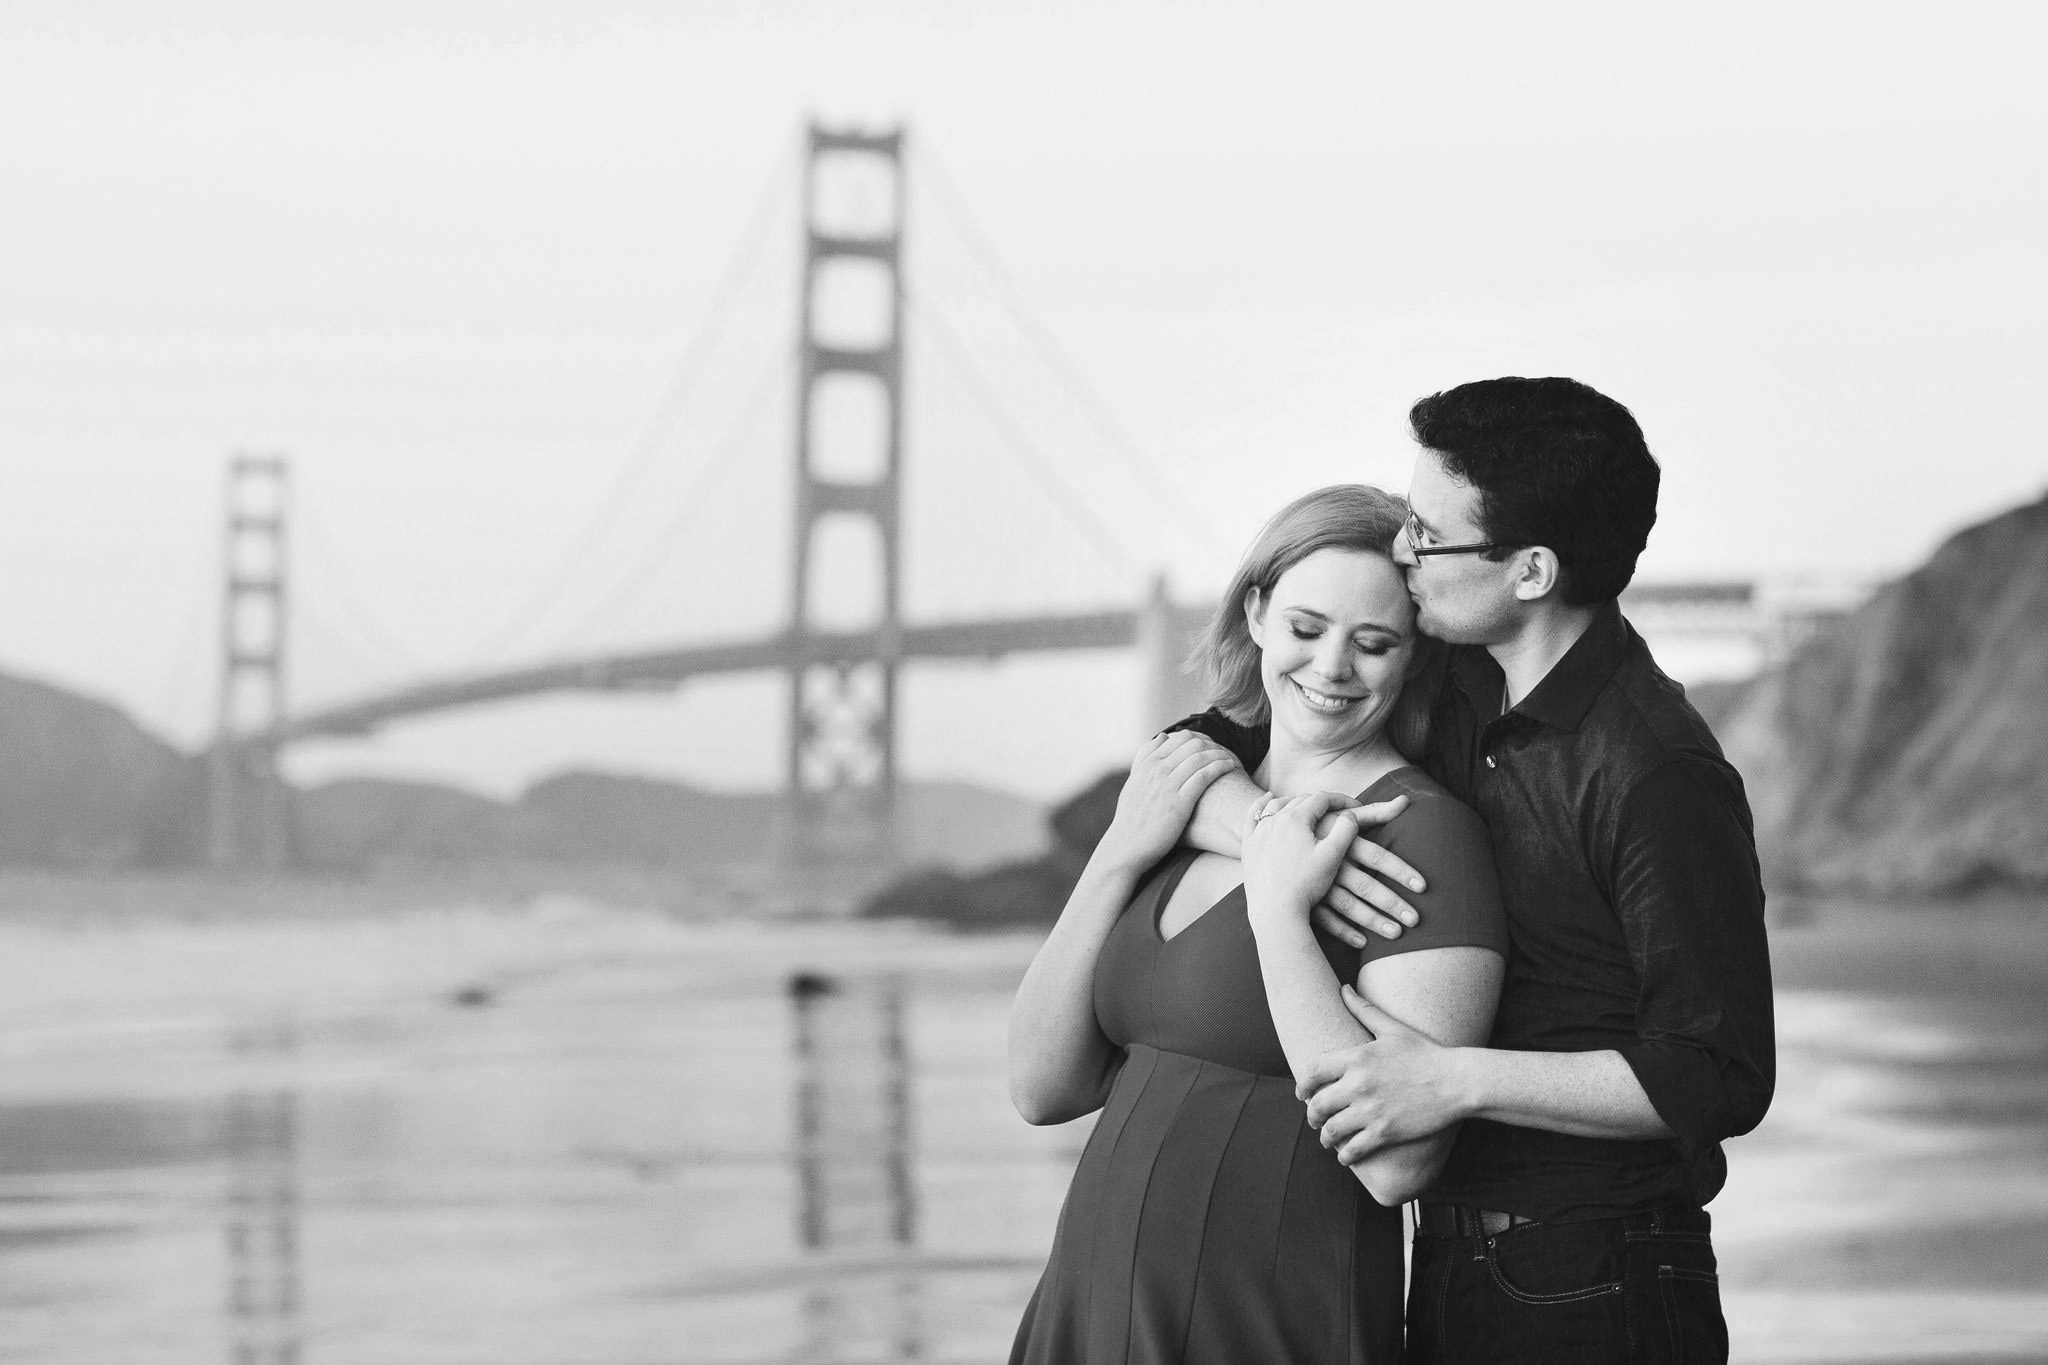 San-Francisco-Engagement-Photo-01.JPG